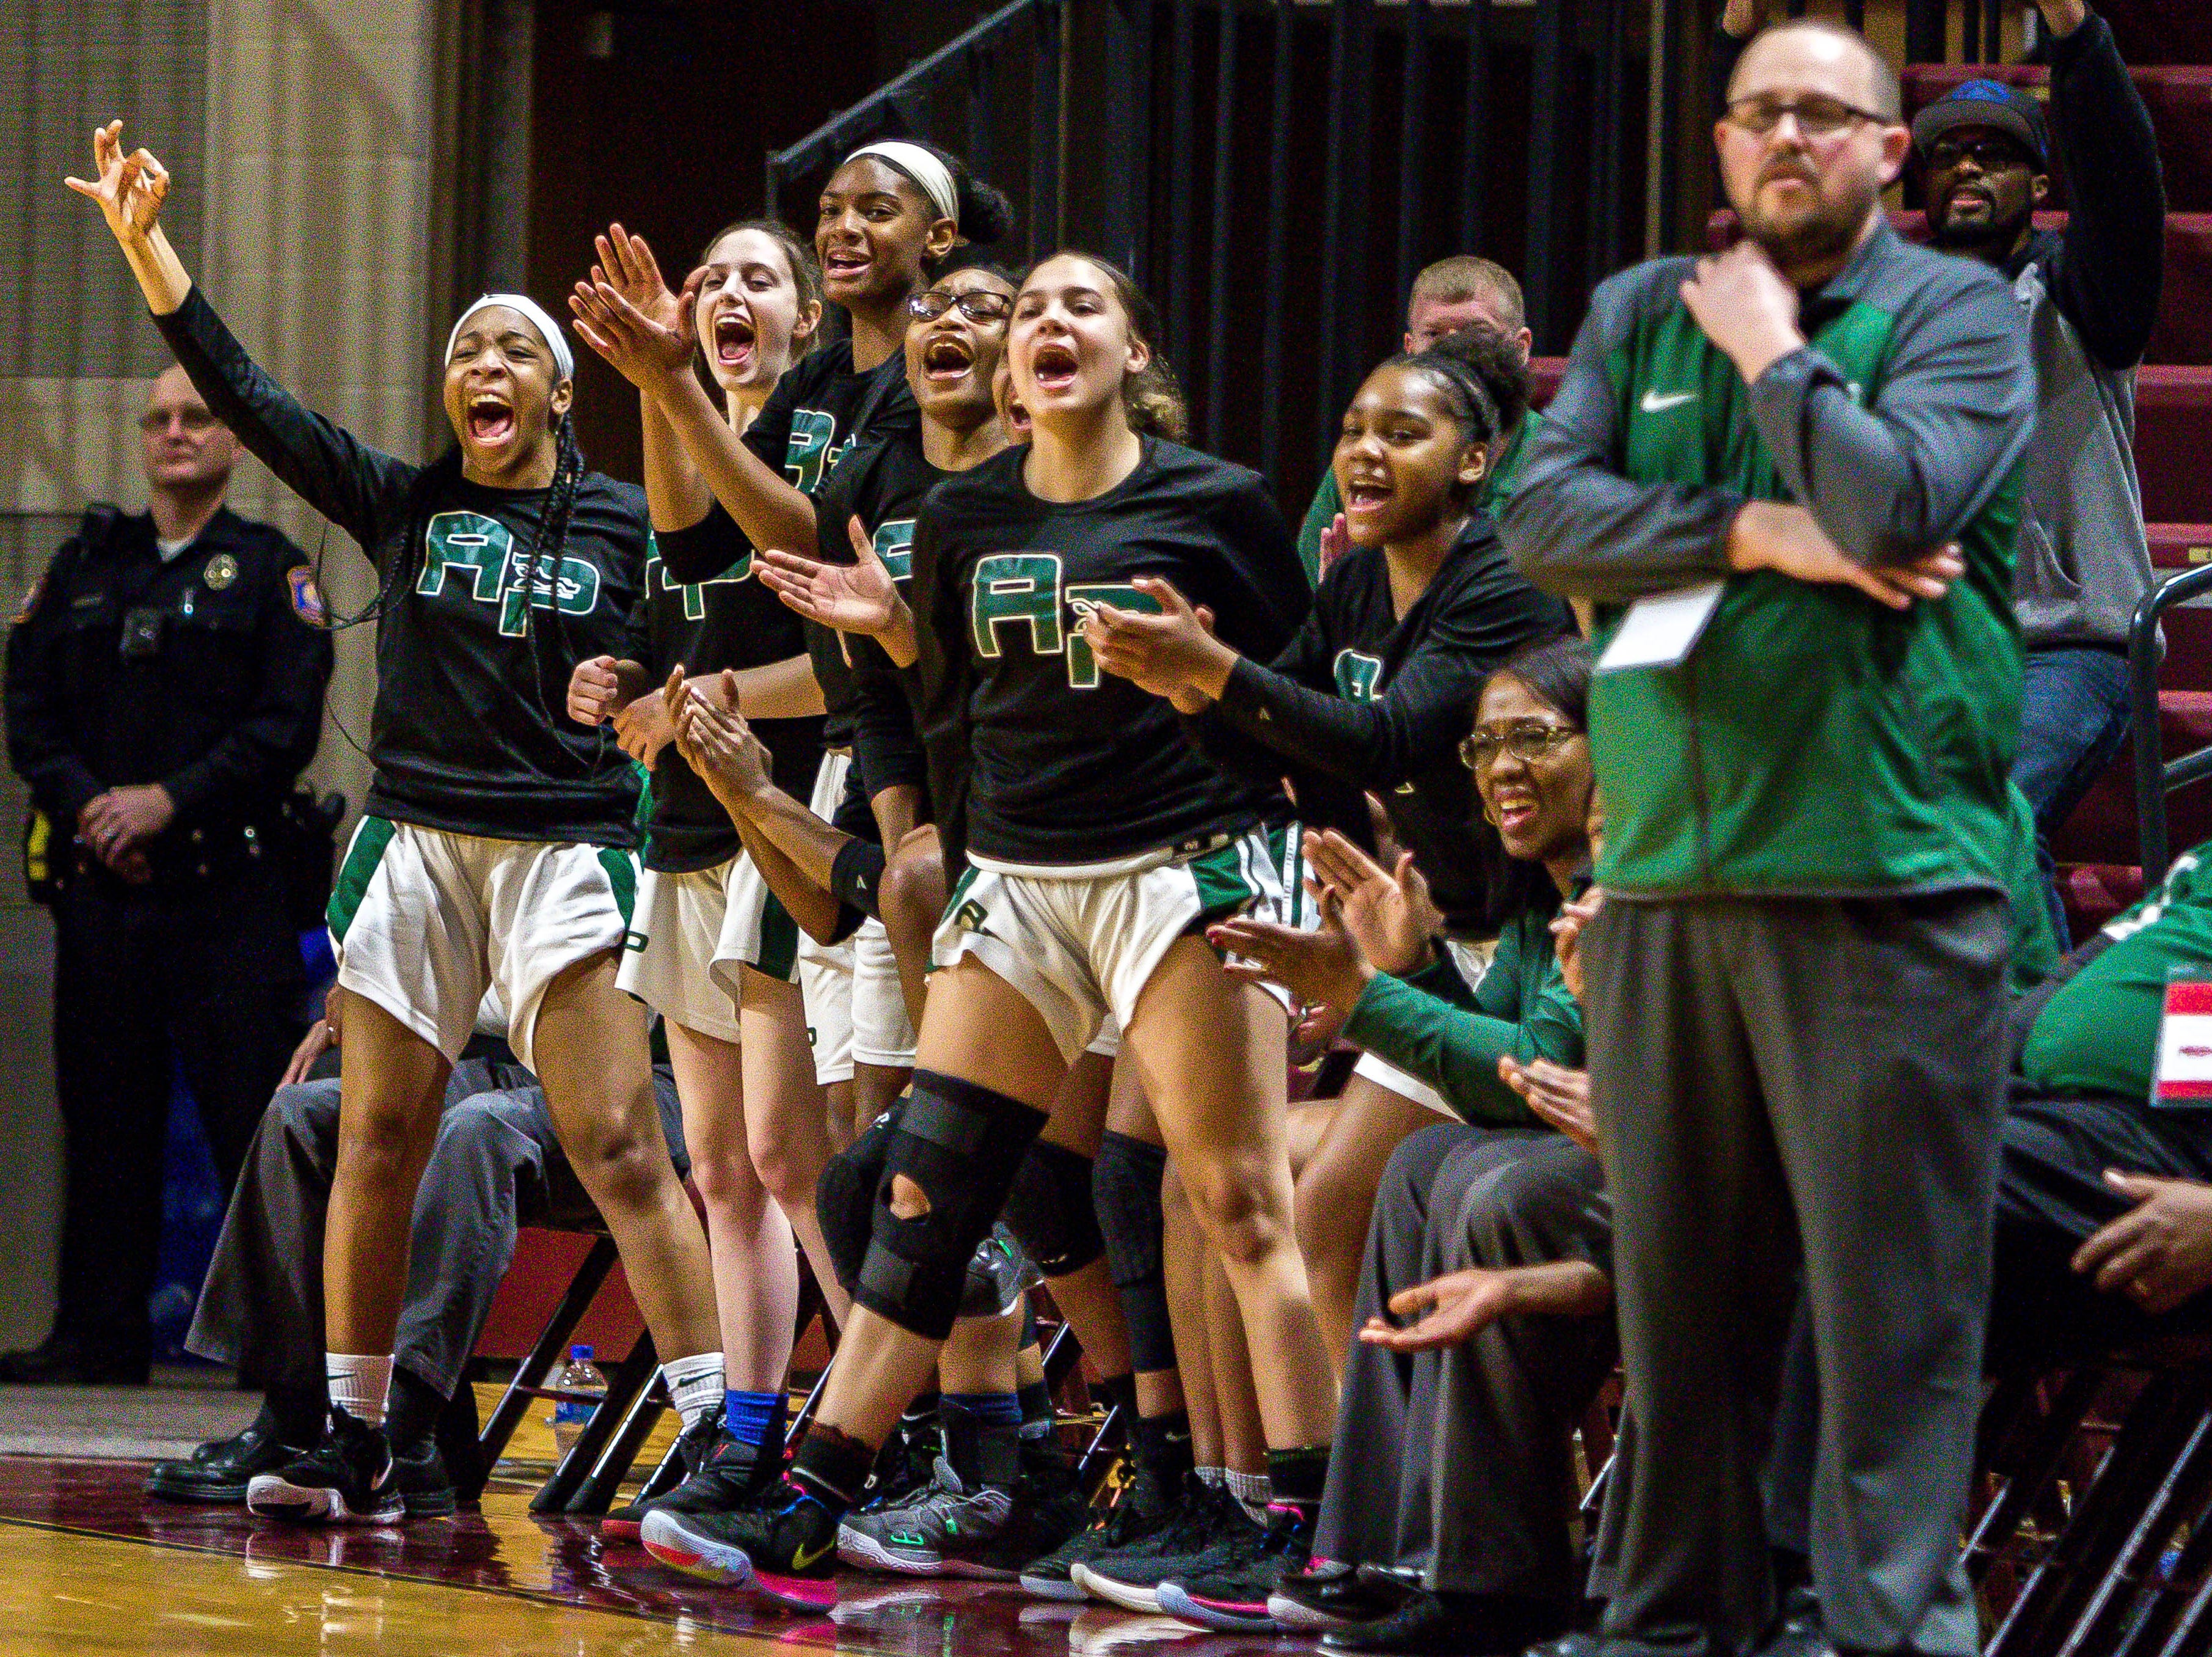 The Ypsilanti Arbor Prep bench reacts after a 3-point shot in the second half.